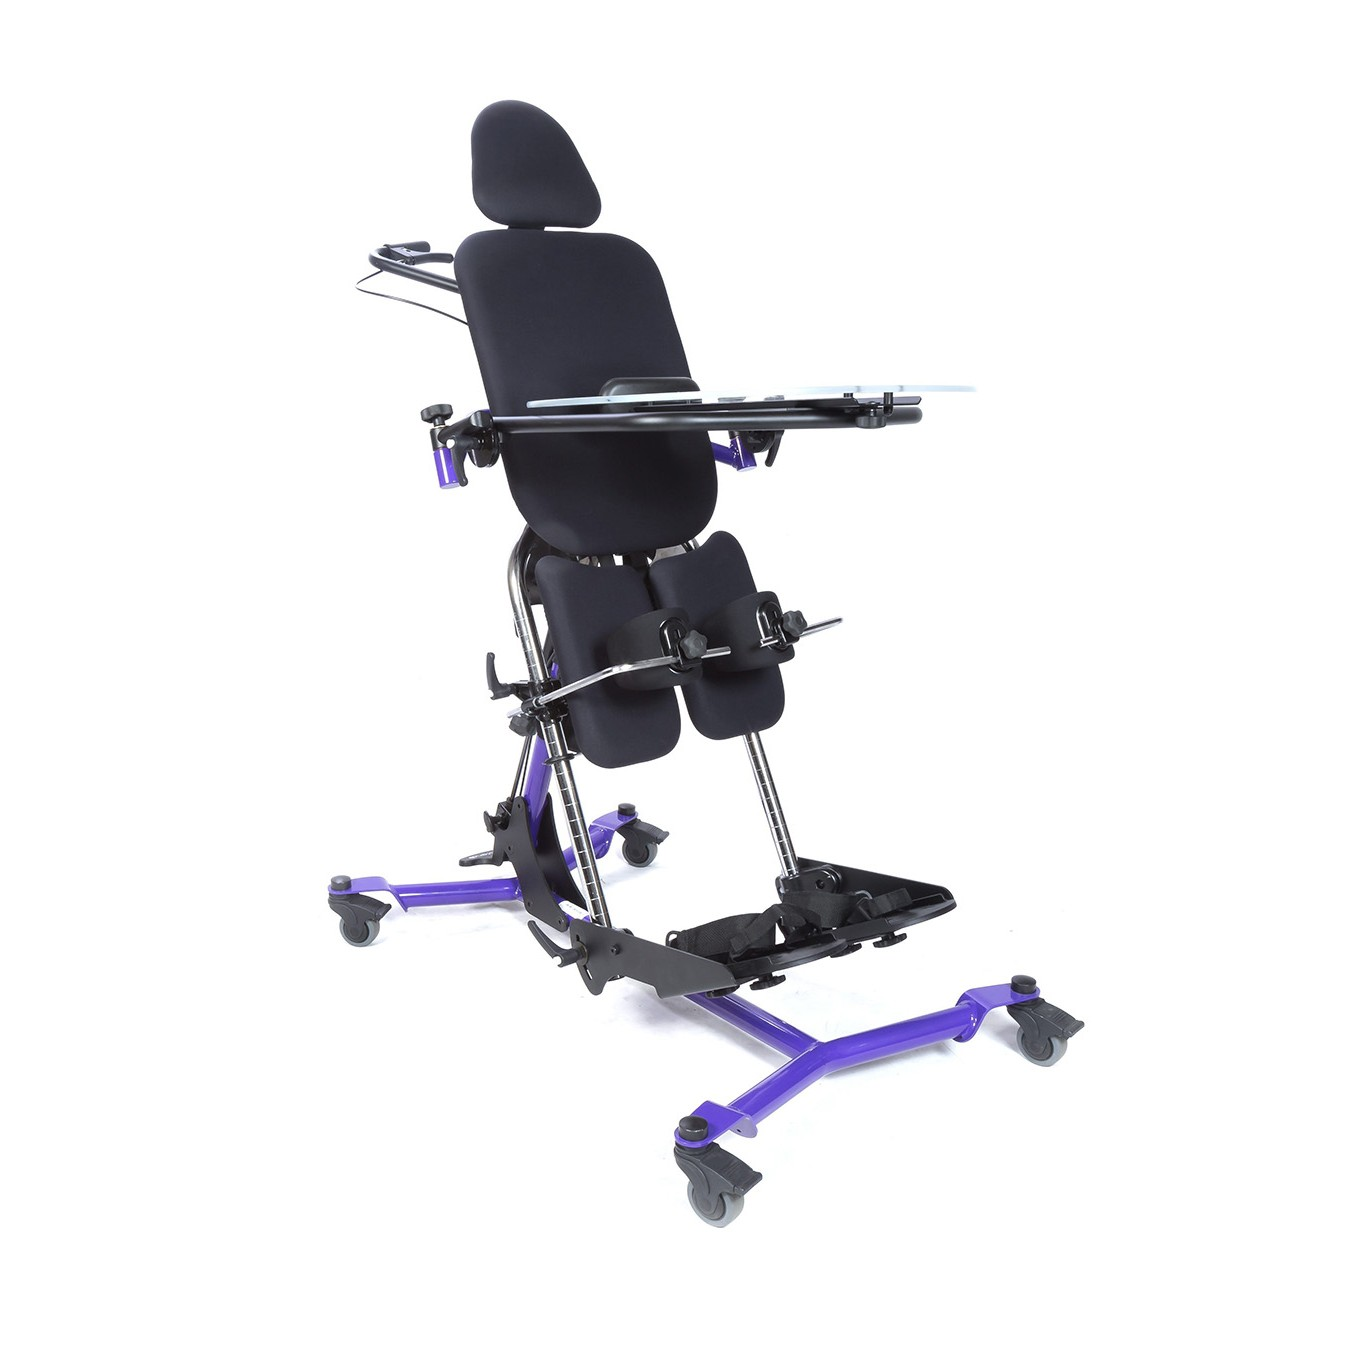 EasyStand Zing Supine TT Size 2 Gas Spring Lift